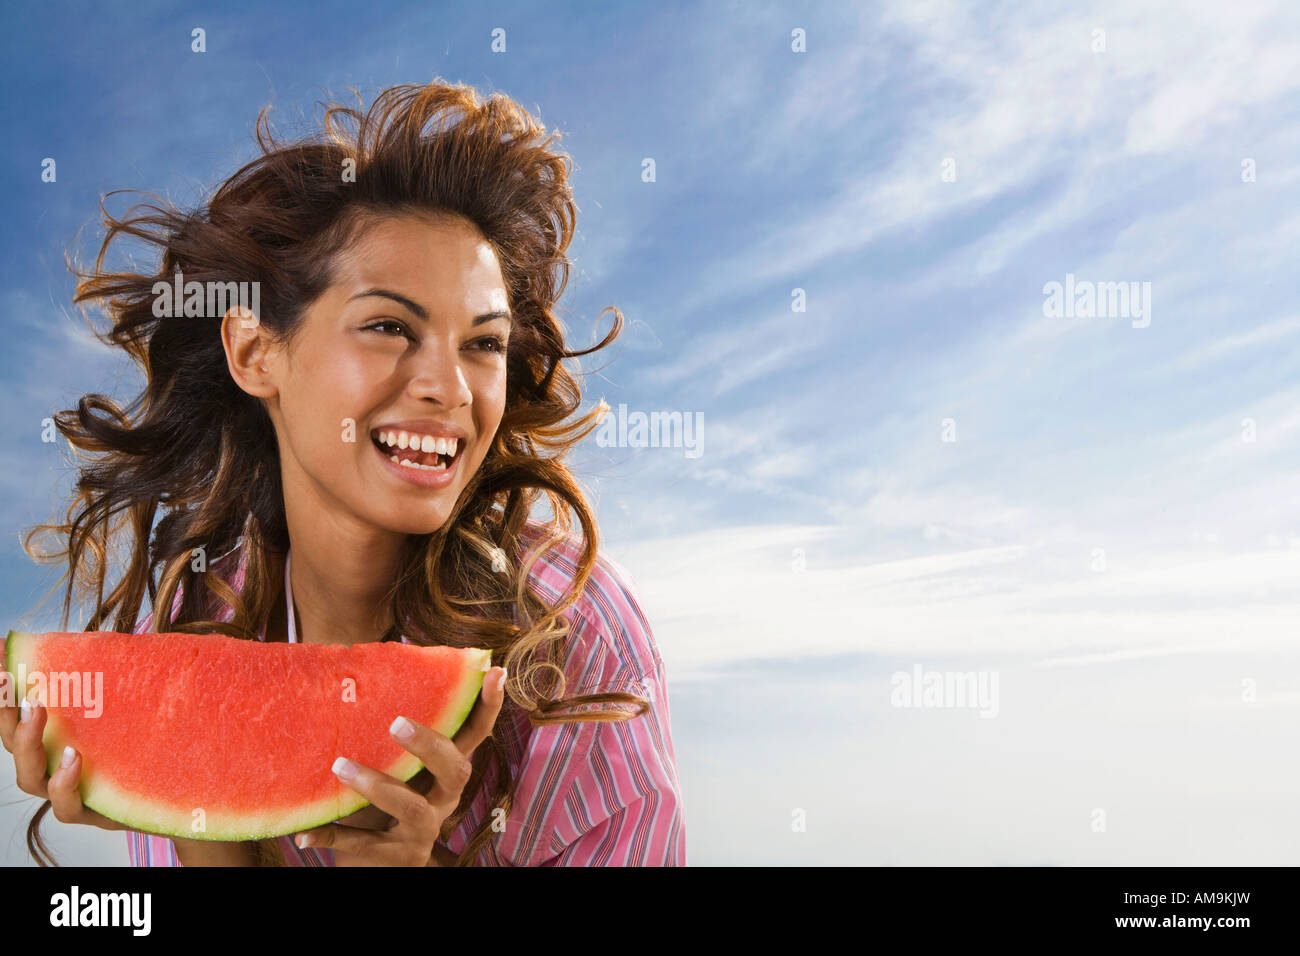 Woman laughing and eating watermelon outdoors. - Stock Image